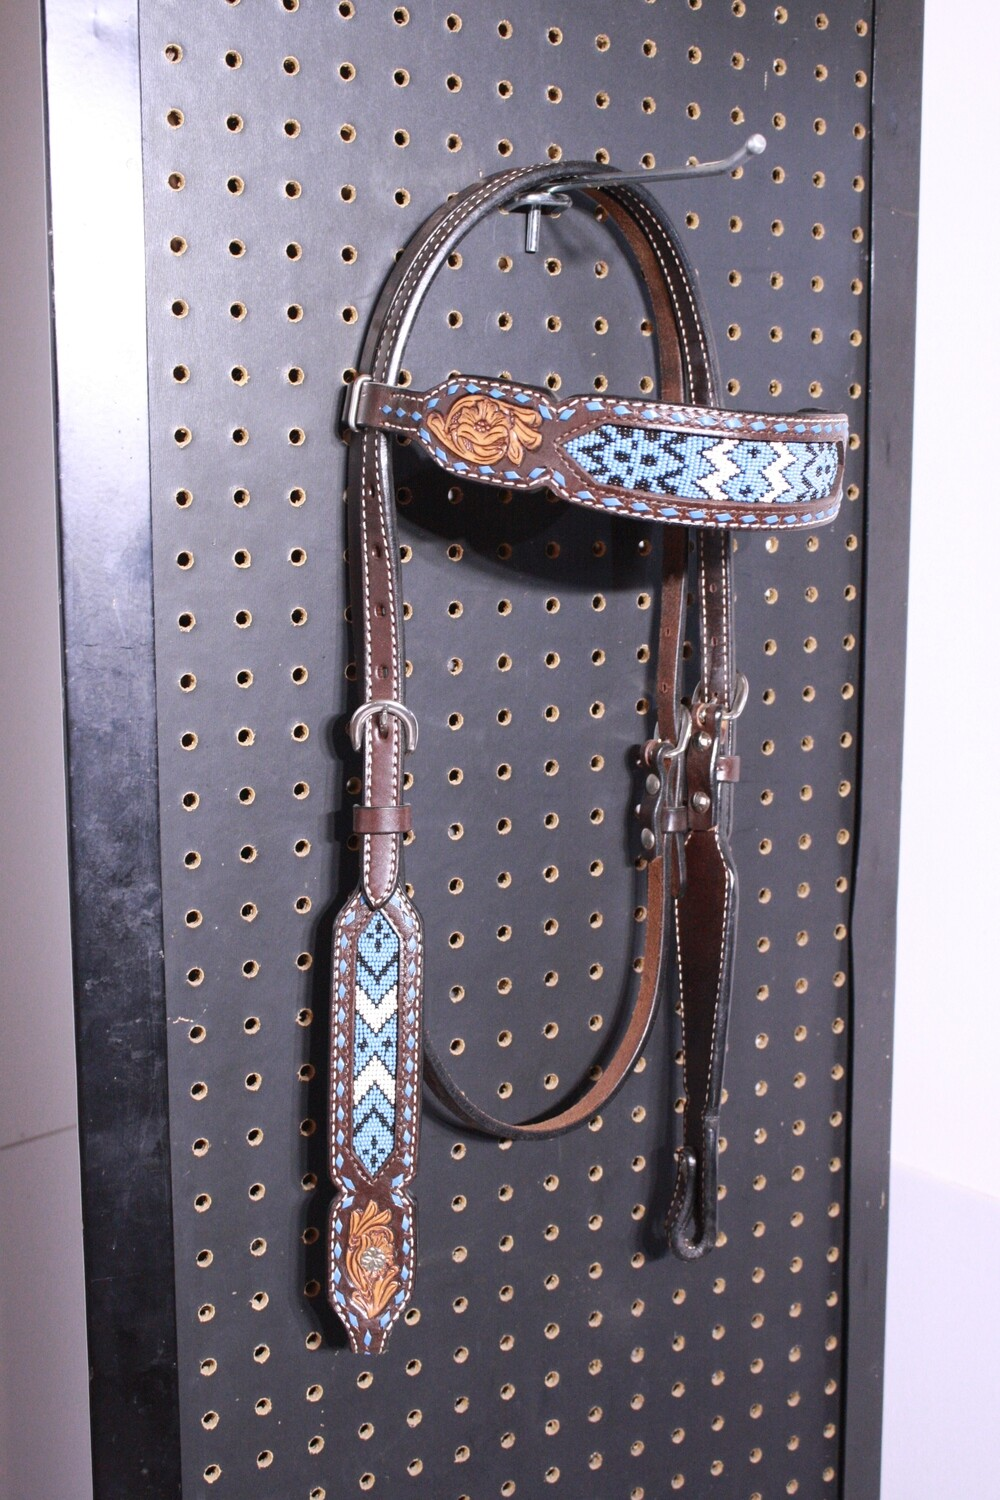 Drk Brown HS with Blue/White Bead Pattern Floral